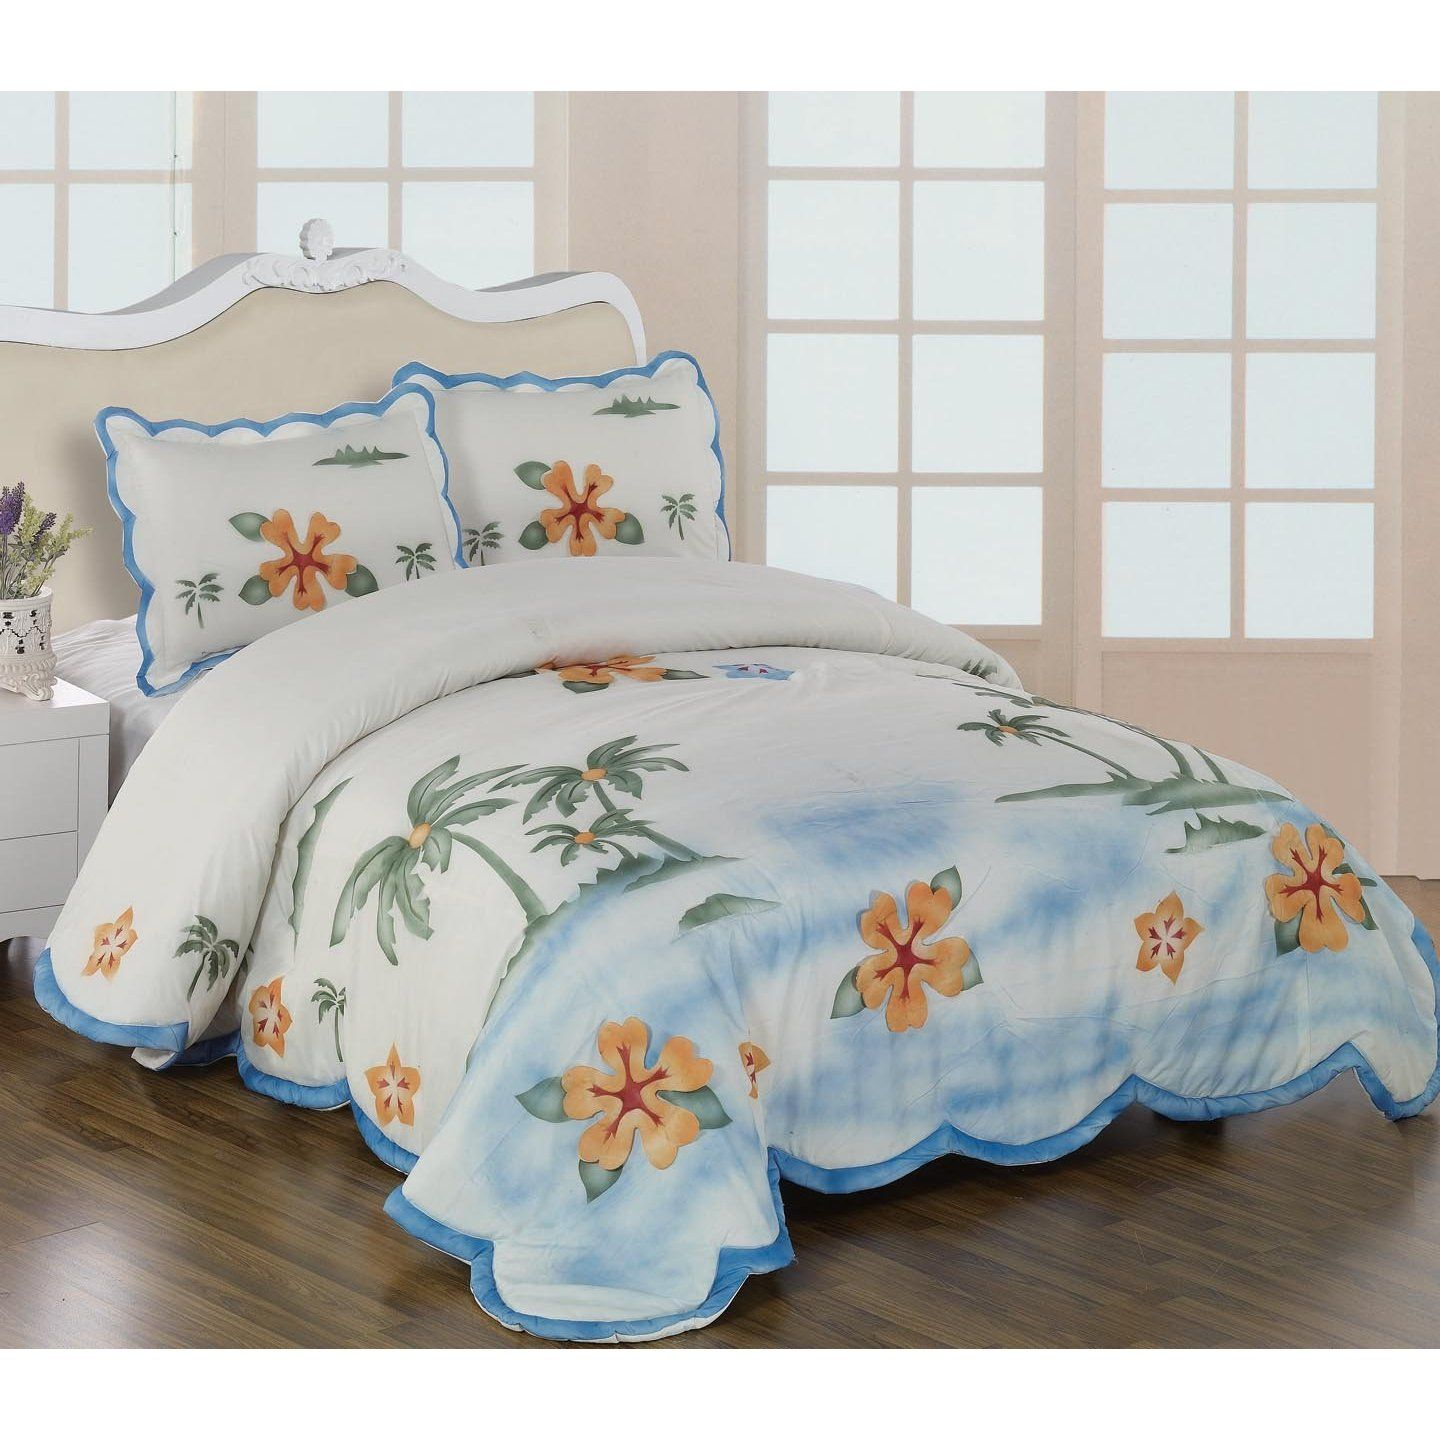 quilts themes tree sets shower print palm comforter comforters hawaiian bedroom terrific coverlets and for colorful matching walmart bedding be themed tropical beach bedspreads curtain